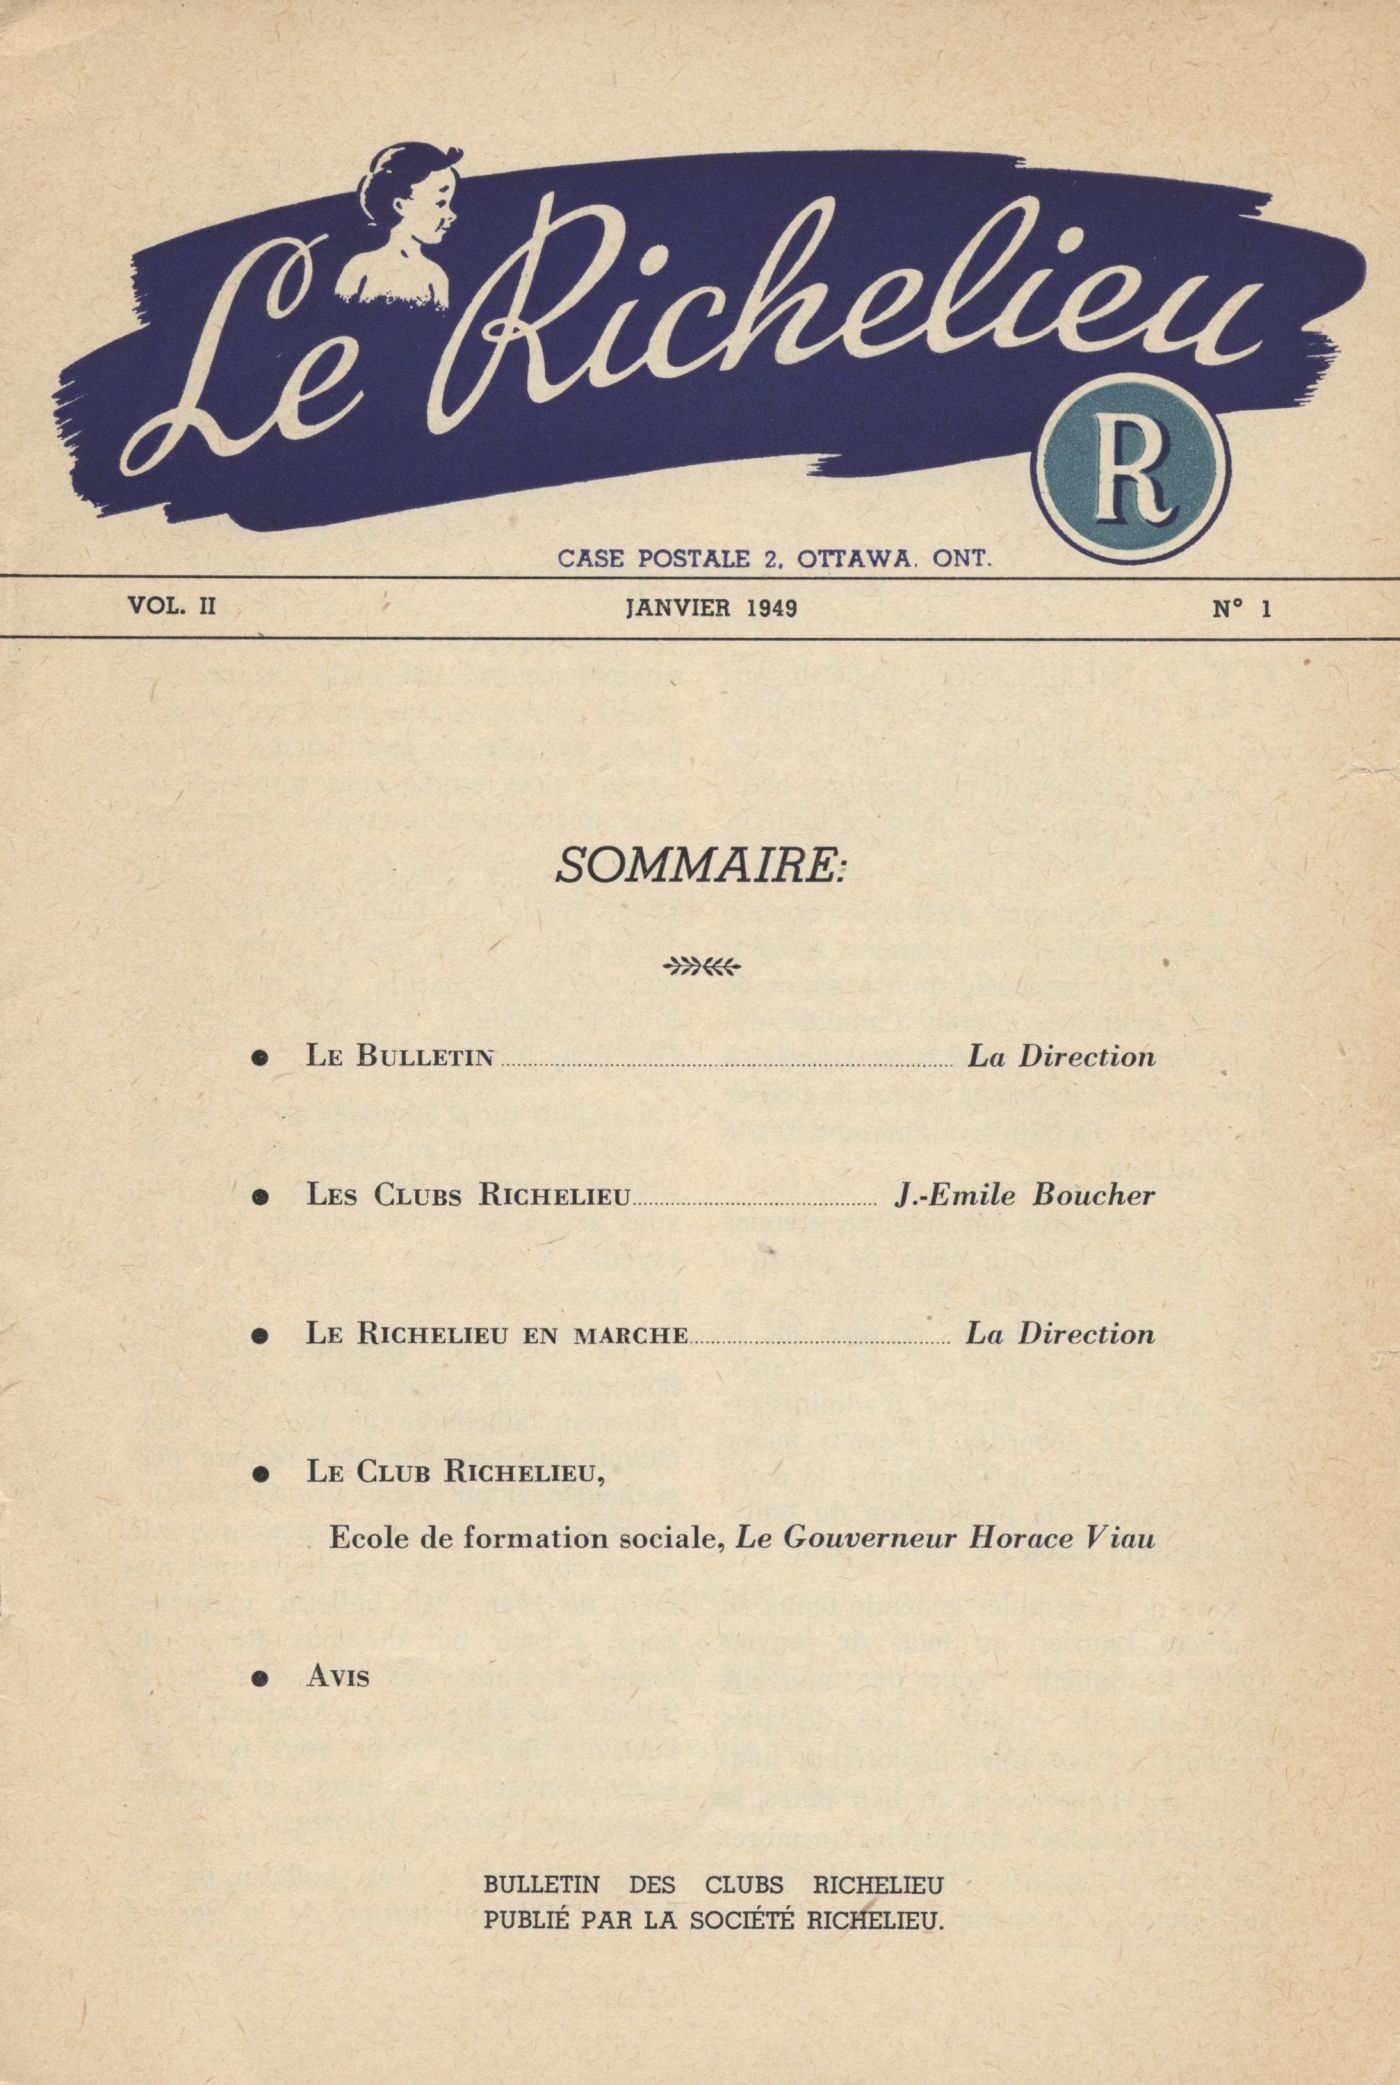 Bulletin printed in French. The title, place of publication, a logo and other details, appear on the cover page, followed by a table of contents. The text on page 10 is printed in two columns; it continues on the following page and is signed. Page 11 offers short texts regarding different communities.